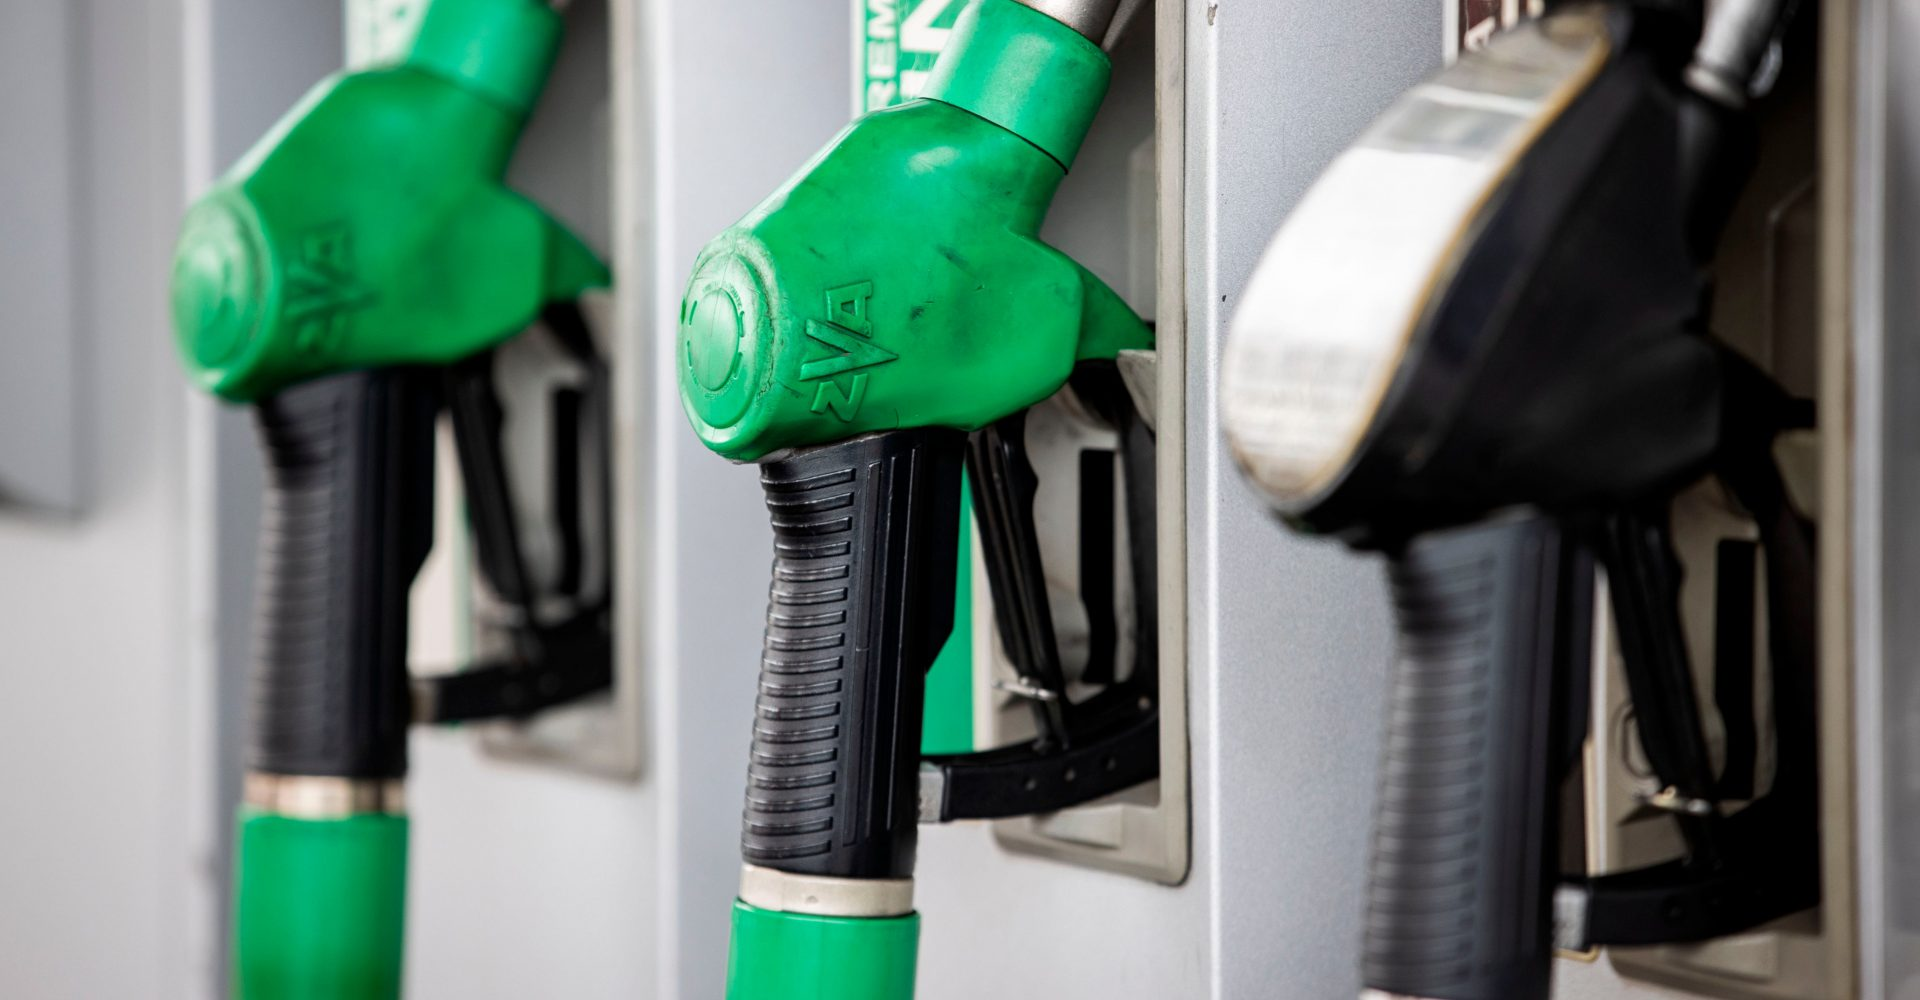 Fuel prices return to pre-pandemic levels ahead of Easter weekend